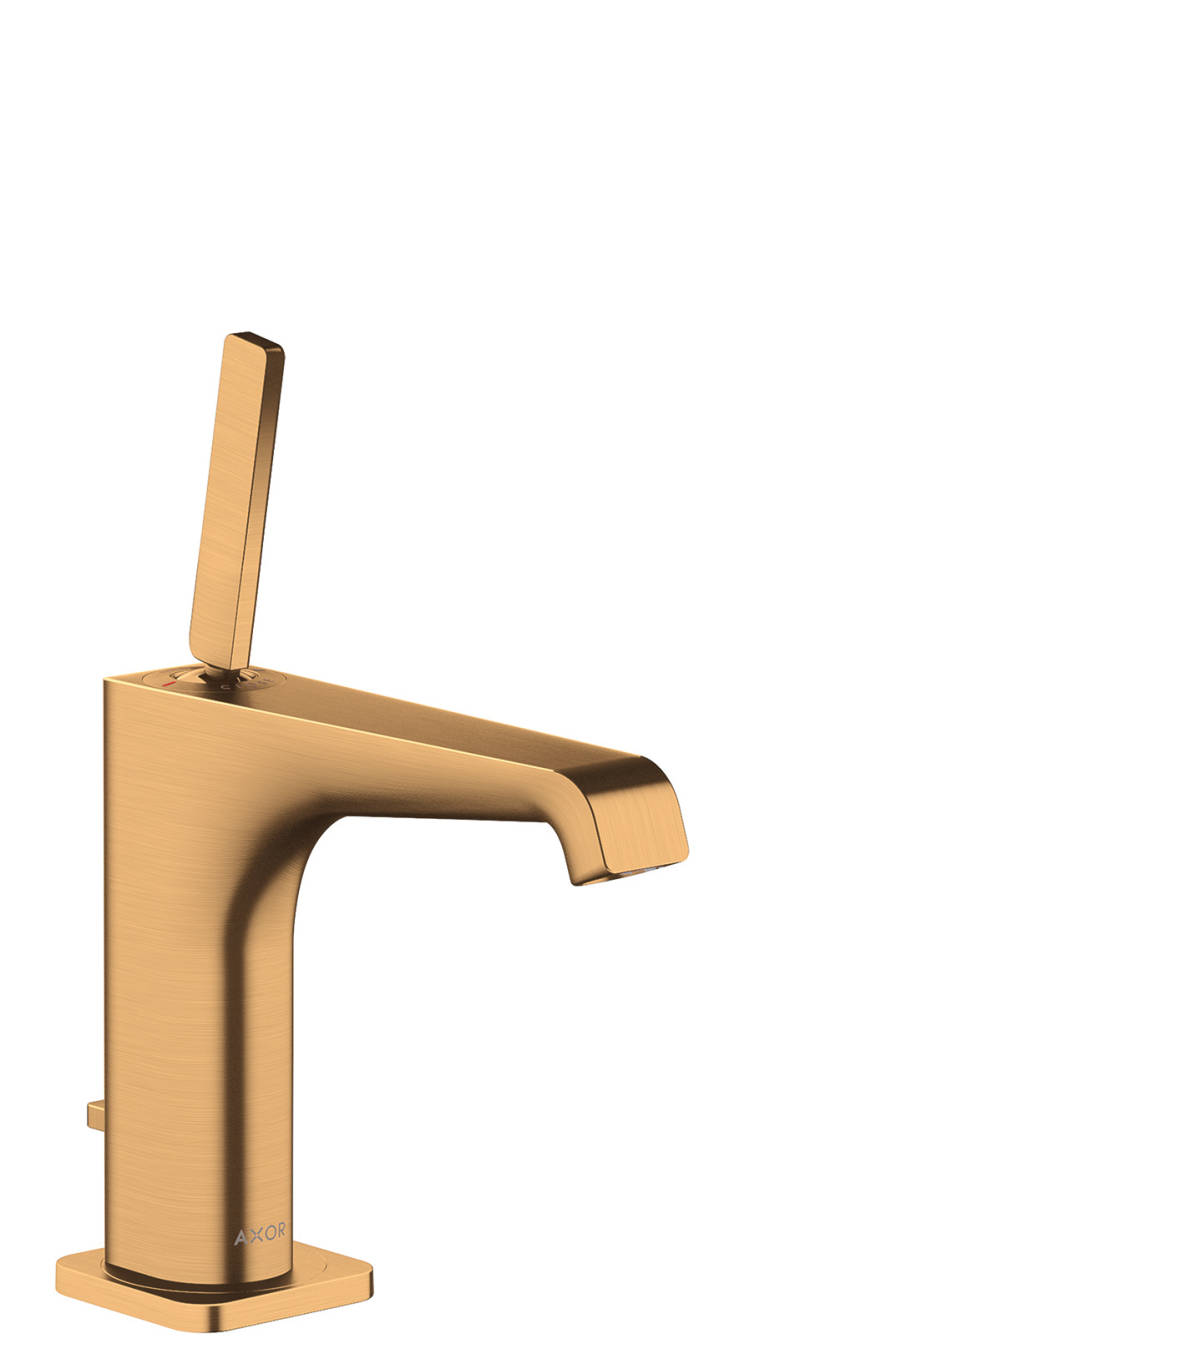 Single lever basin mixer 130 with pop-up waste set, Brushed Gold Optic, 36100250